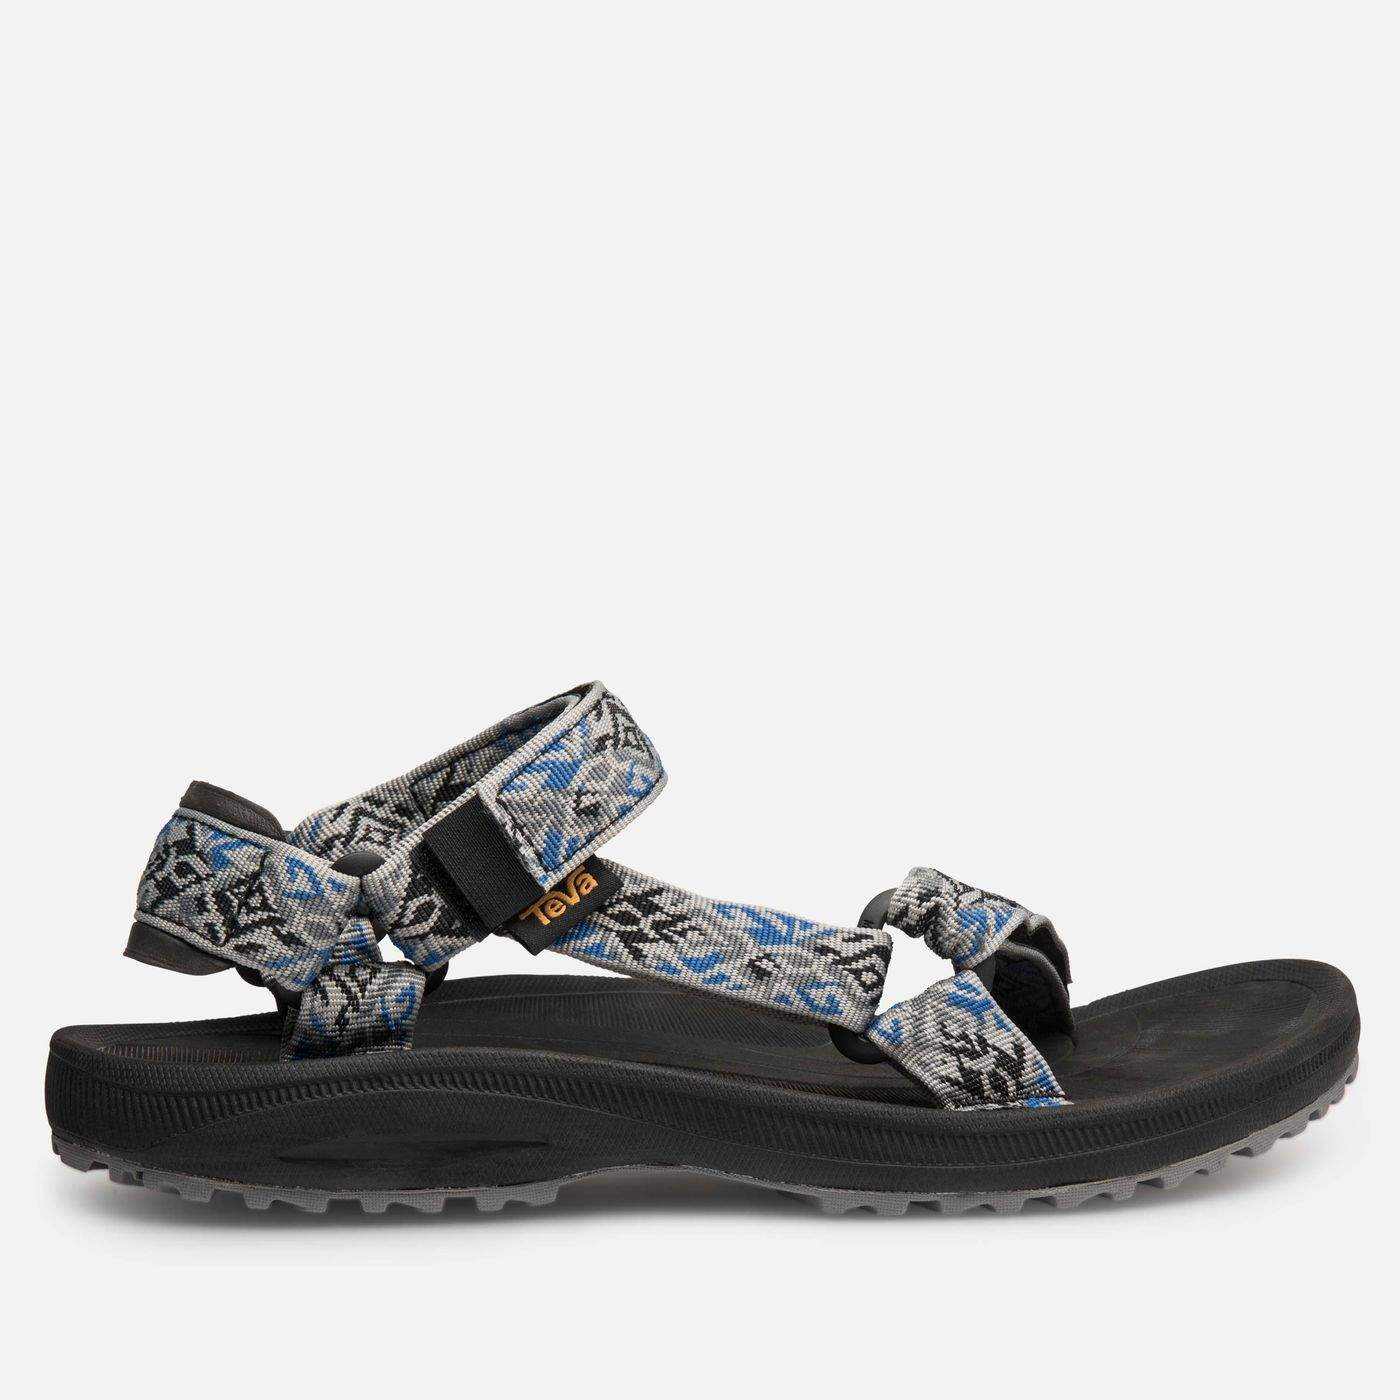 TEVA Winsted 1017419 RSGR